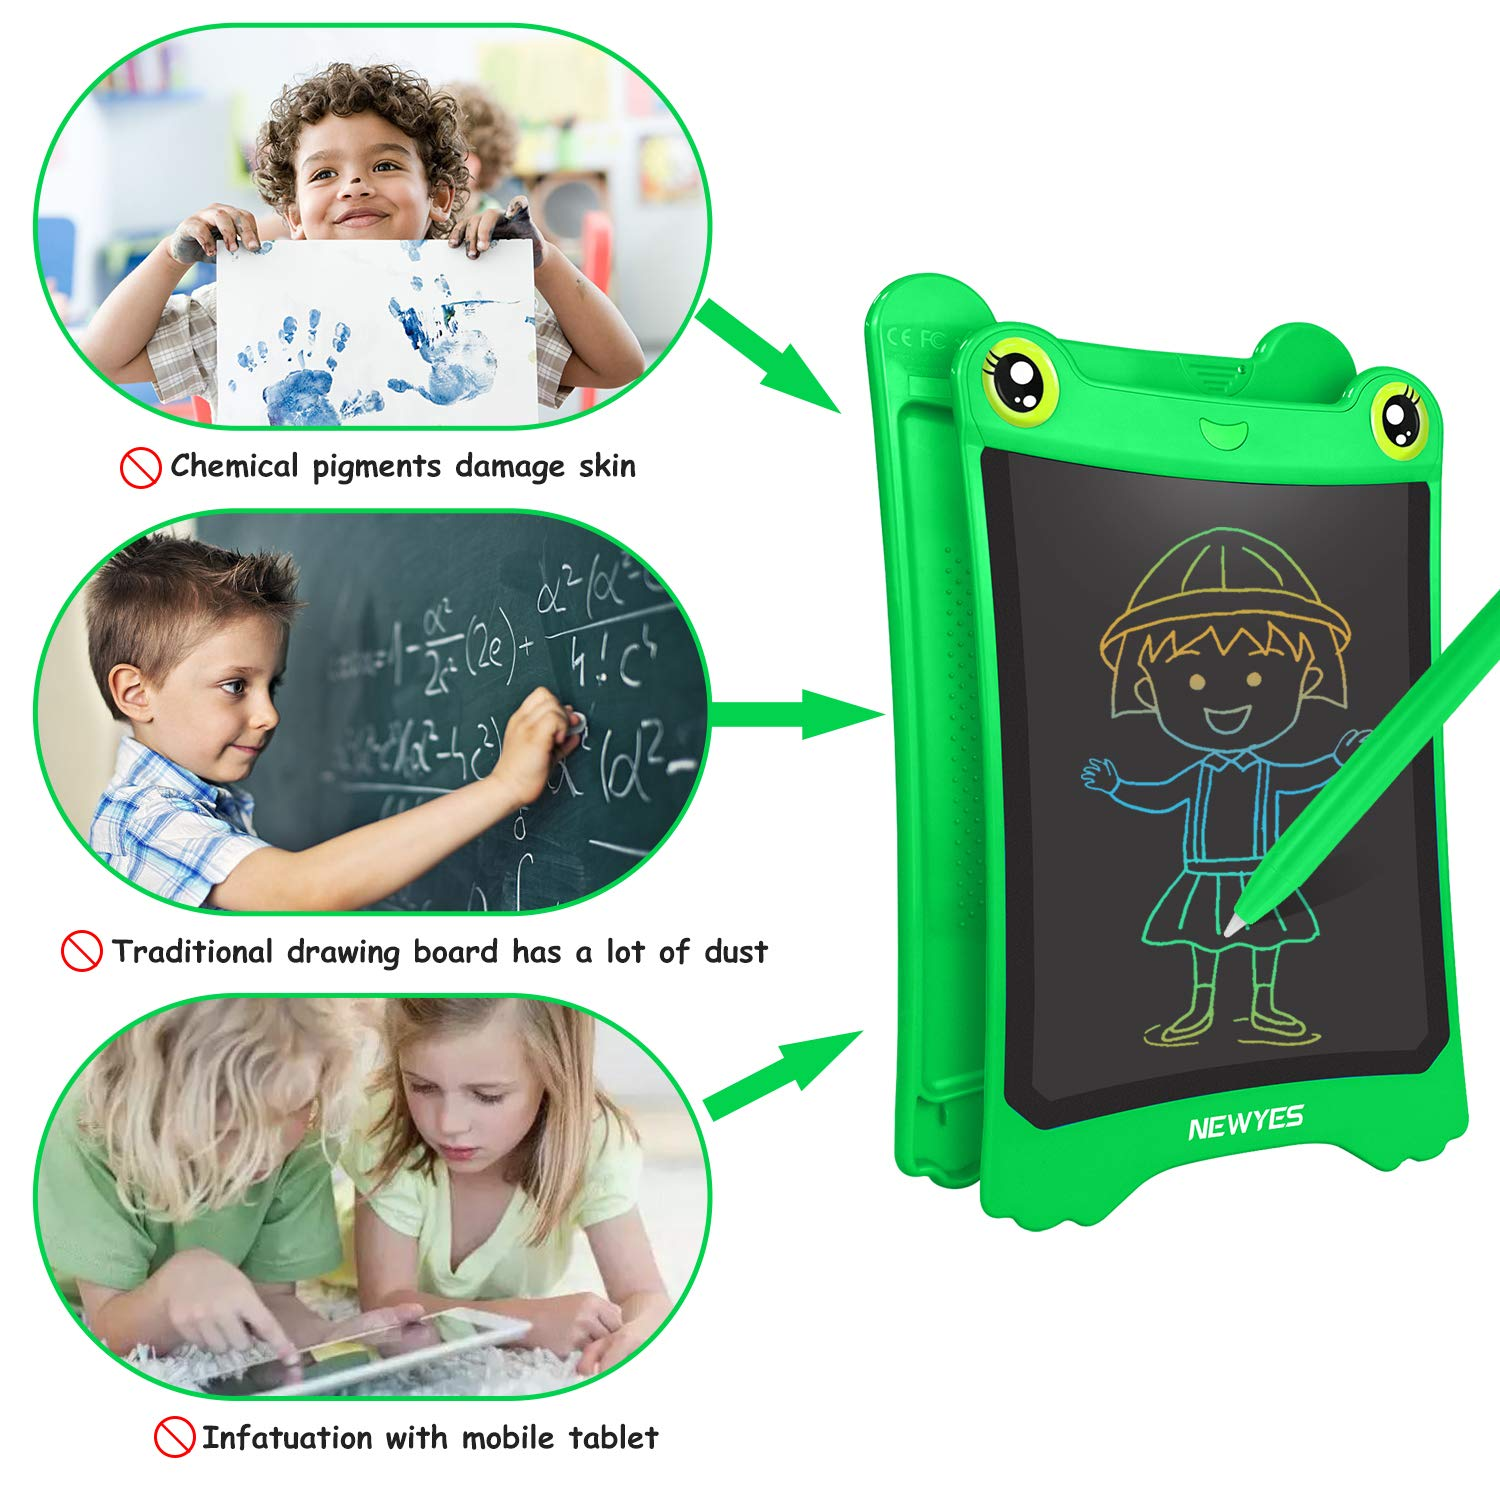 WOBEECO LCD Writing Tablet, 8.5 Inch Electronic Writing Board Doodle and Scribble Board for Kids (Green) by WOBEECO (Image #4)